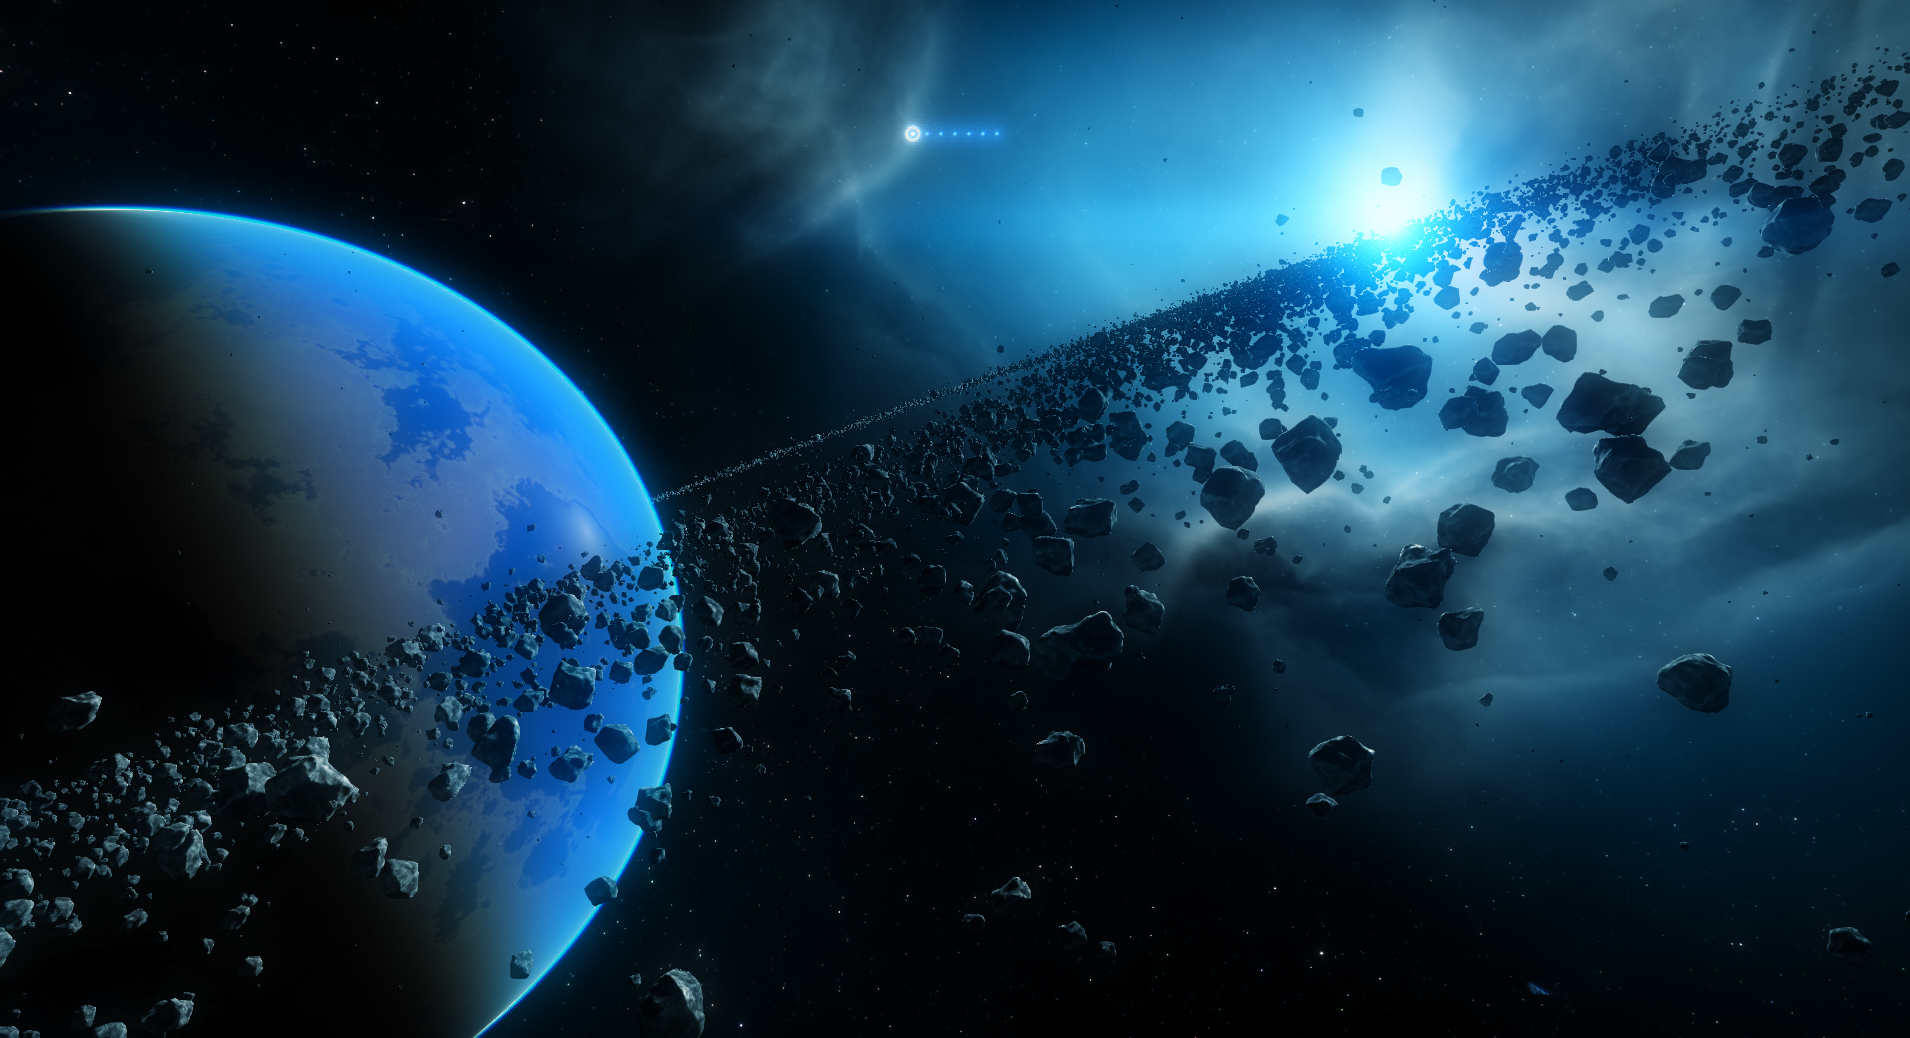 cool comets meteors and asteroids wallpaper - photo #37